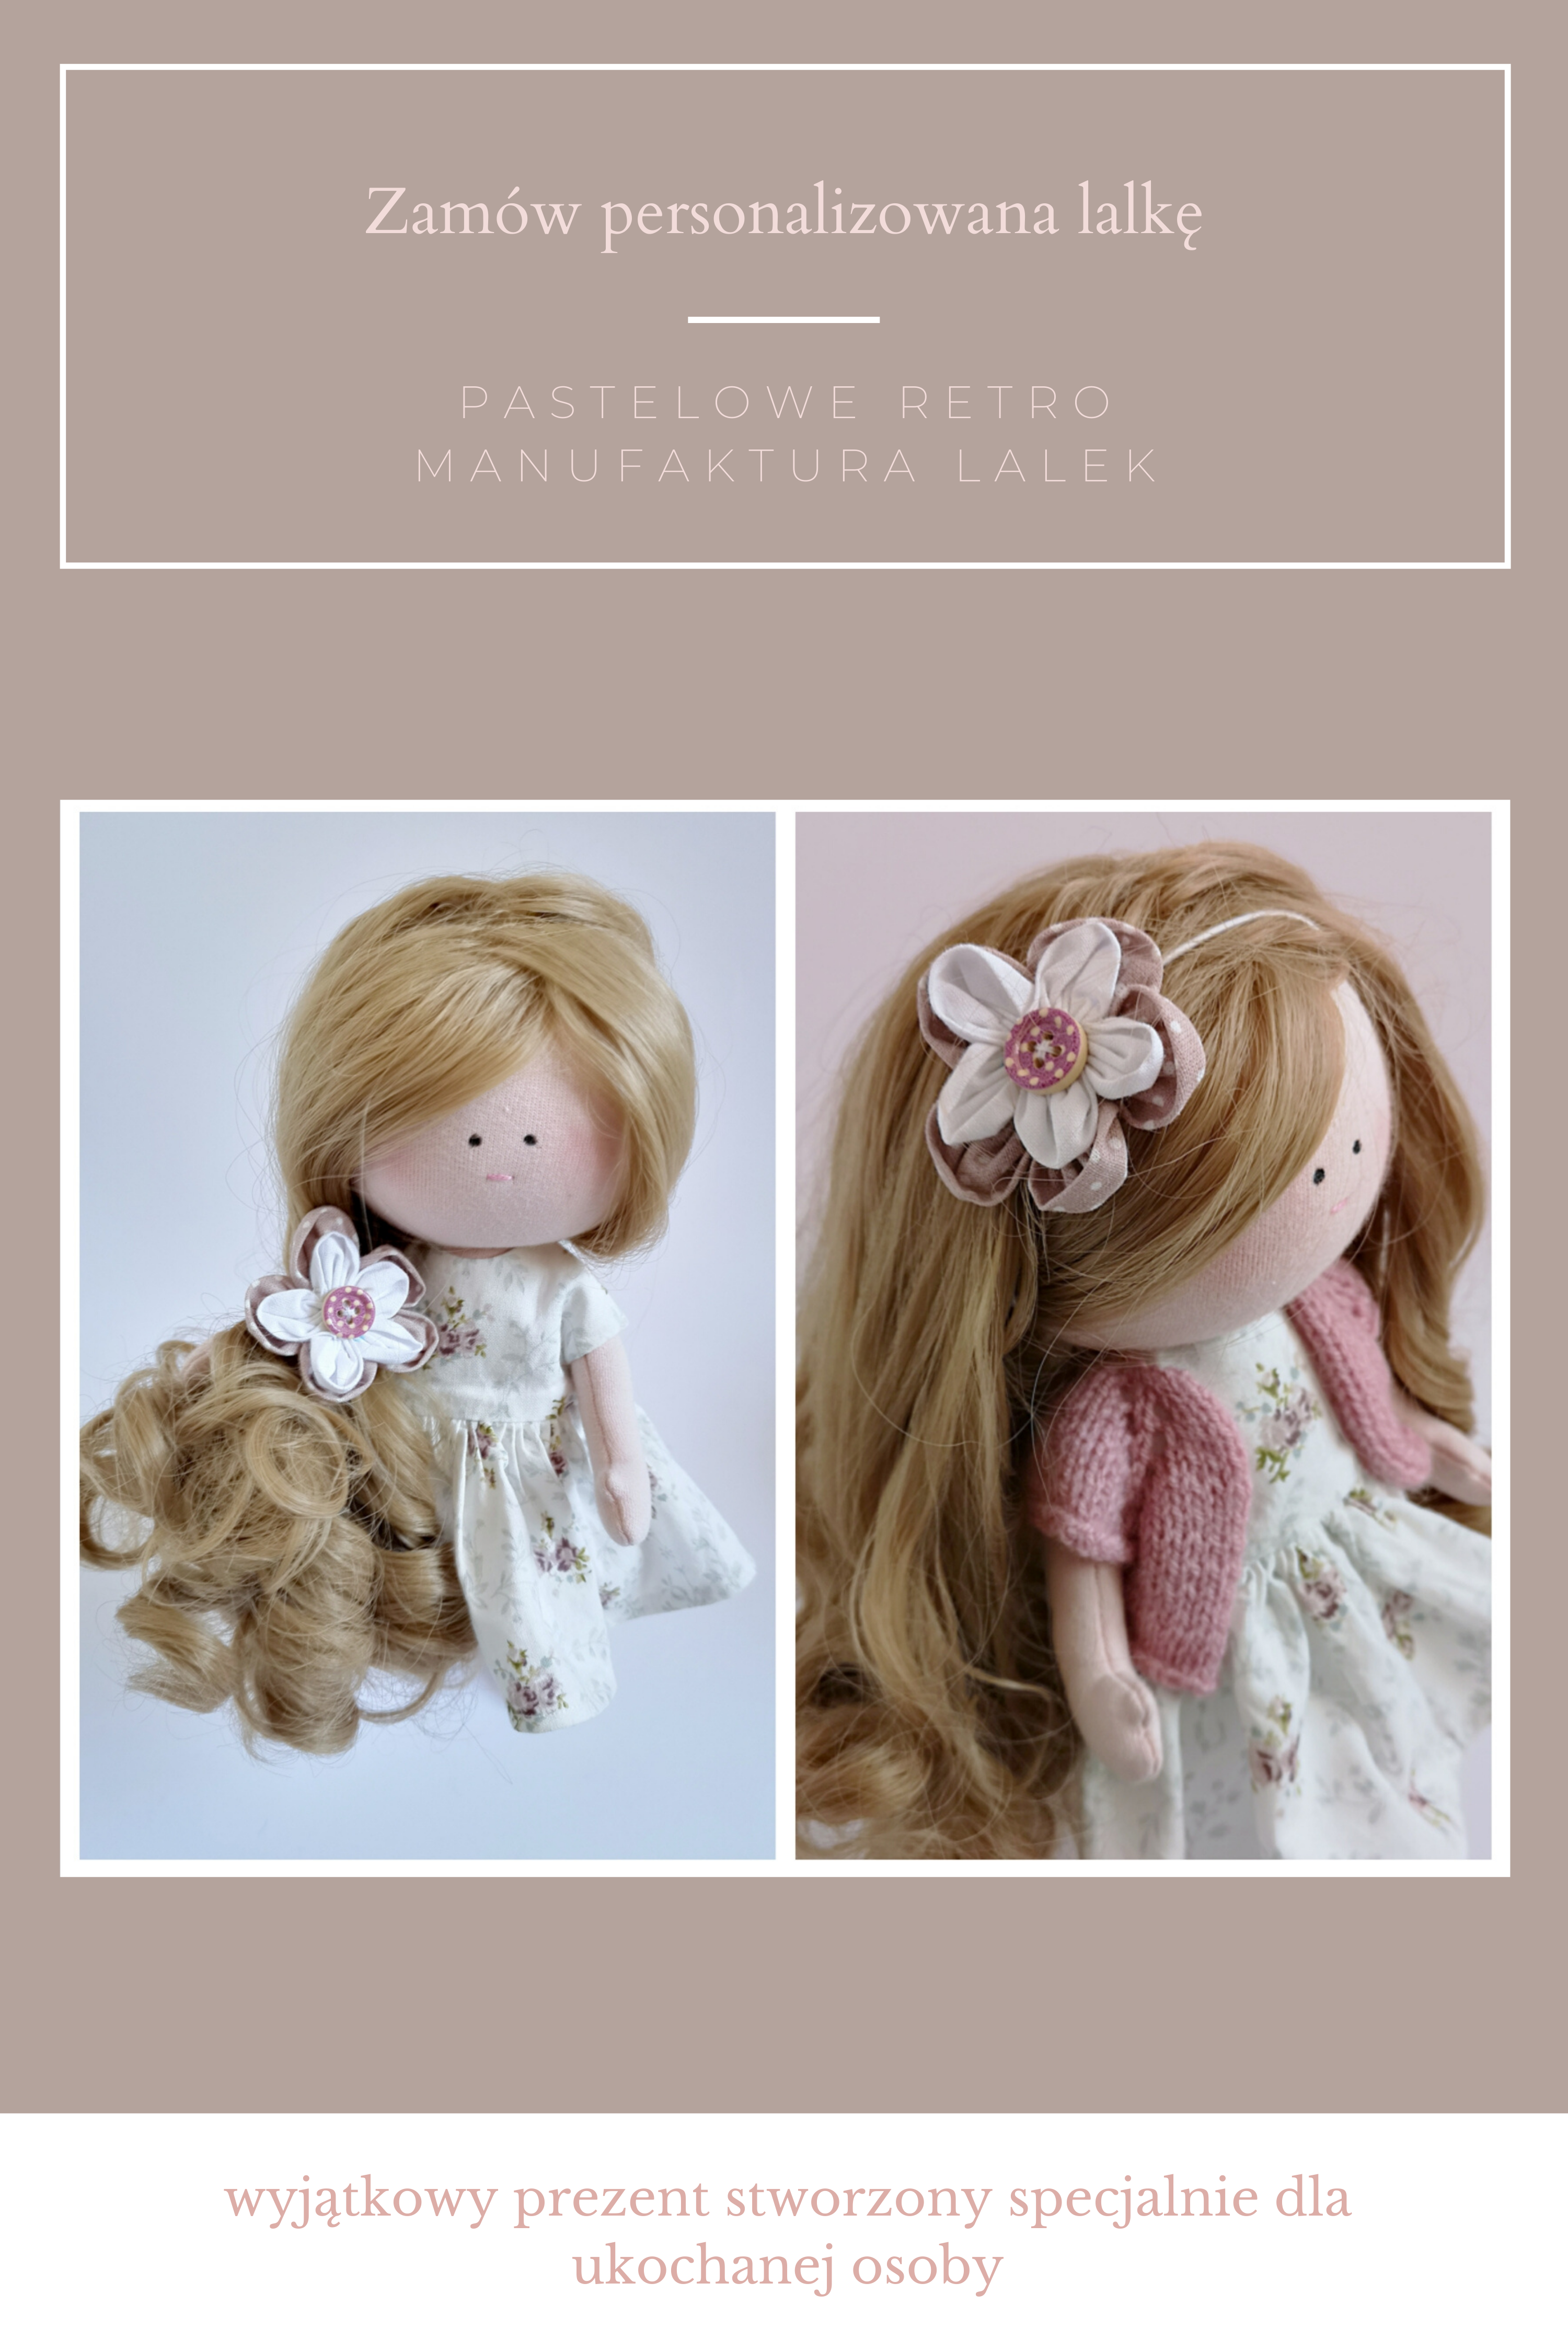 Personalized Doll Brithday Present For Girl Dolls Handmade Personalized Dolls Presents For Girls